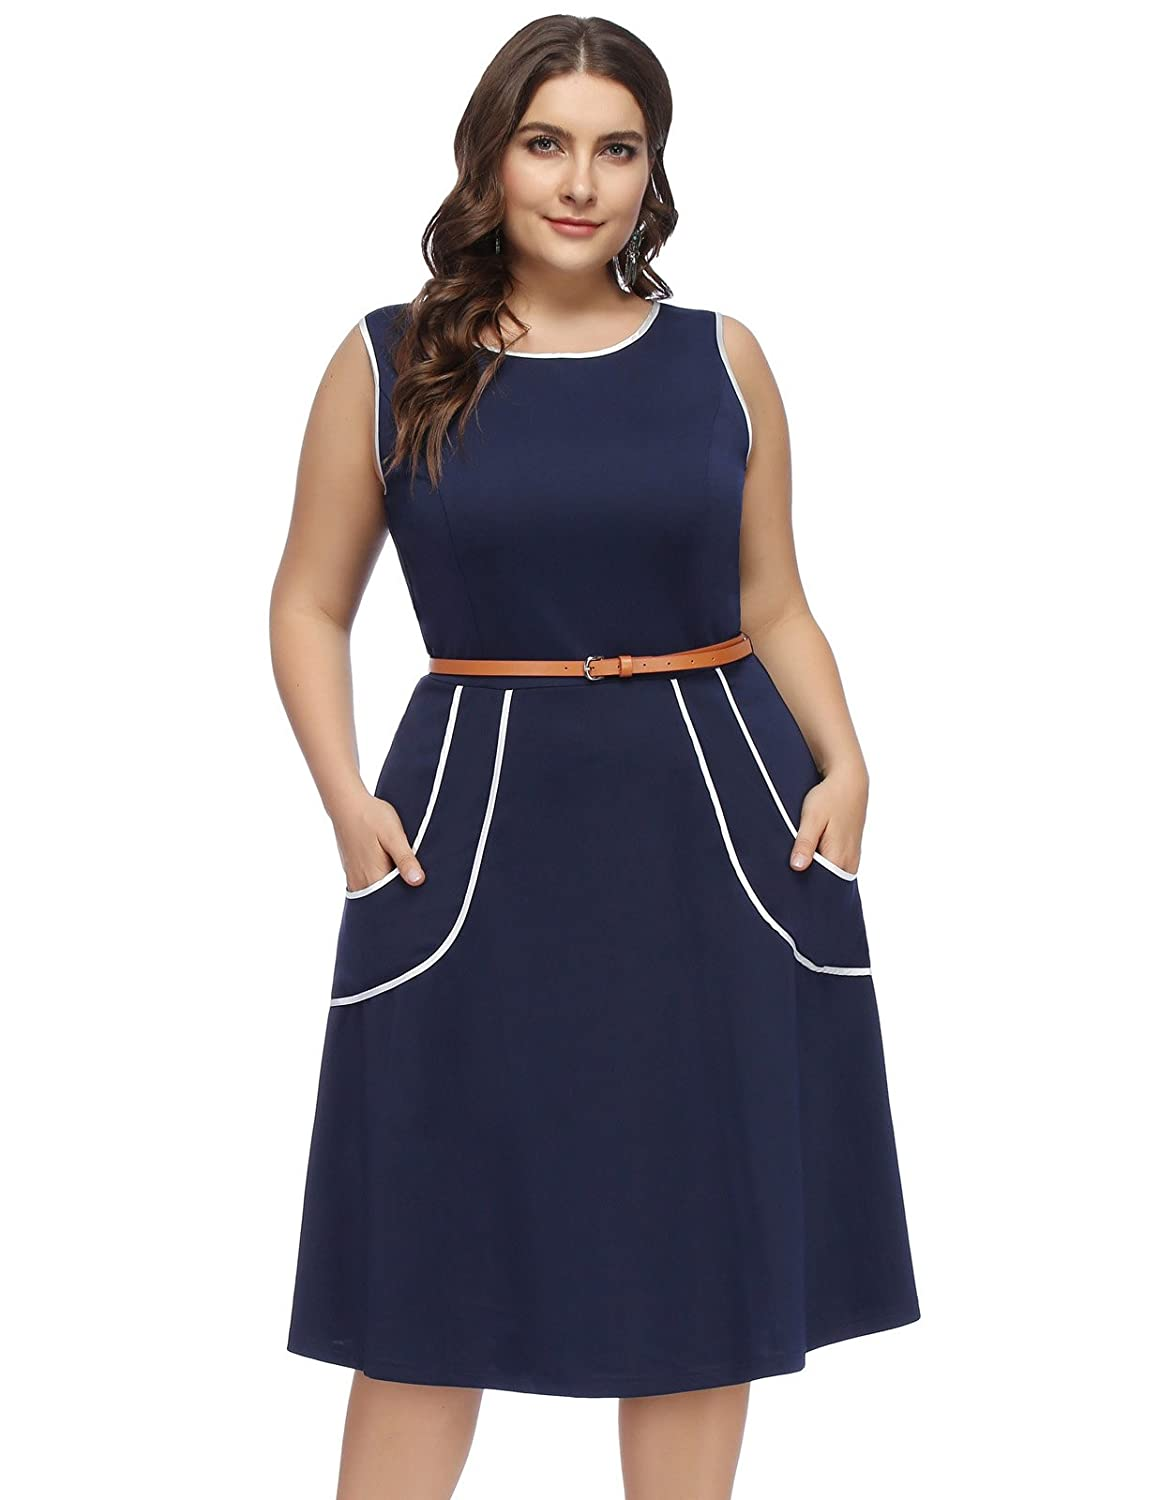 60s 70s Plus Size Dresses, Clothing, Costumes Hanna Nikole Women Plus Size Sleeveless Pockets A-Line Midi Dress with Belt $29.99 AT vintagedancer.com